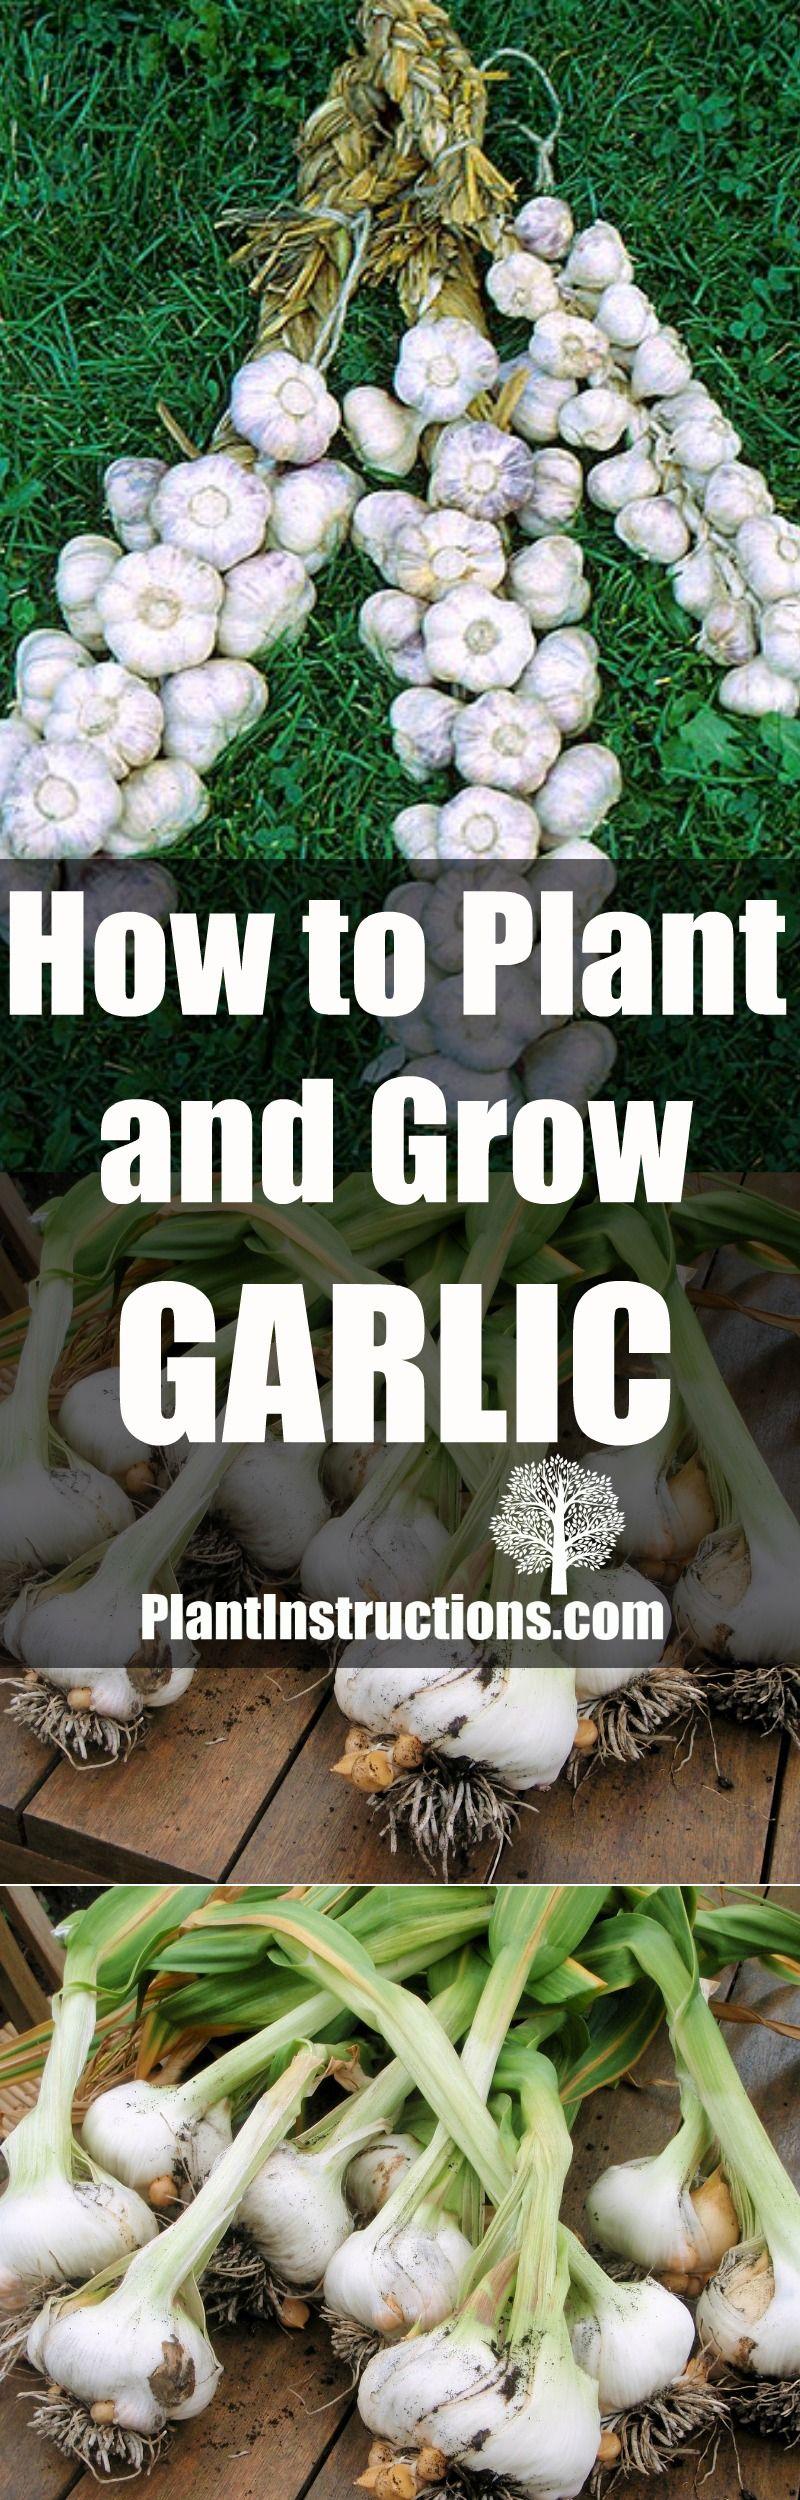 How To Plant And Grow Garlic Hydroponic Gardening 400 x 300